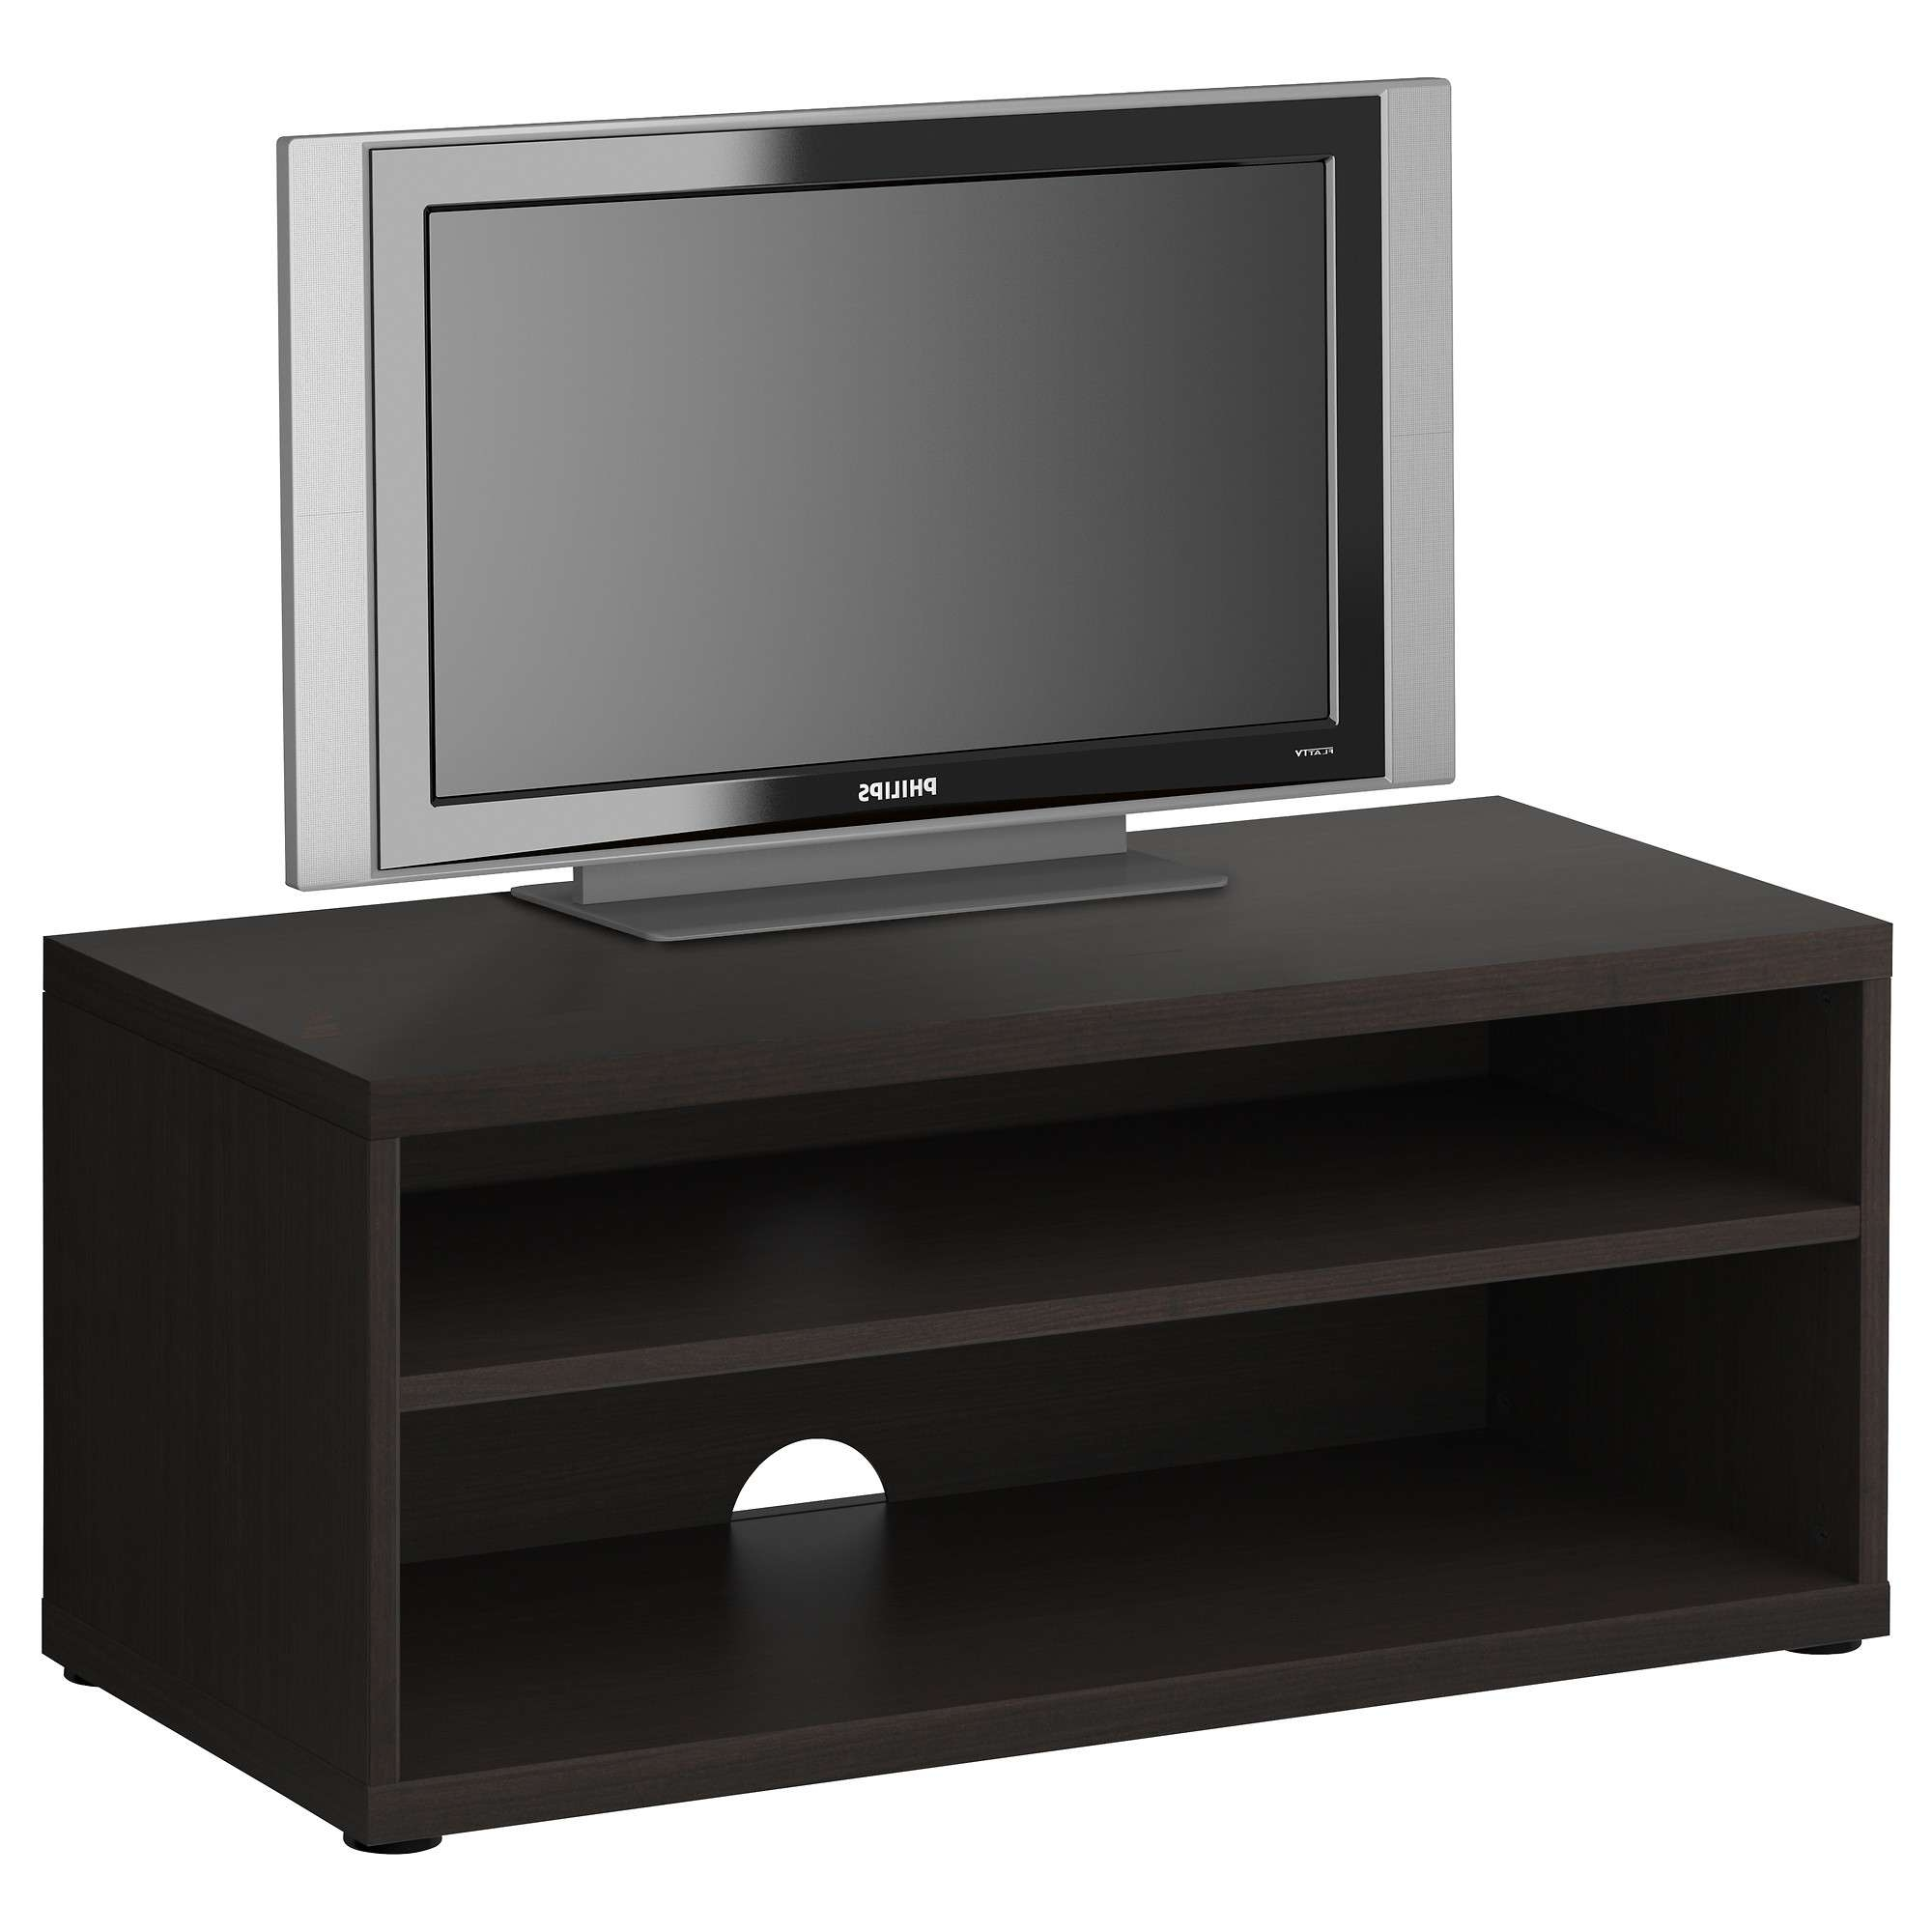 Tv Stands & Tv Units | Ikea Inside Small Tv Stands For Top Of Dresser (View 14 of 15)